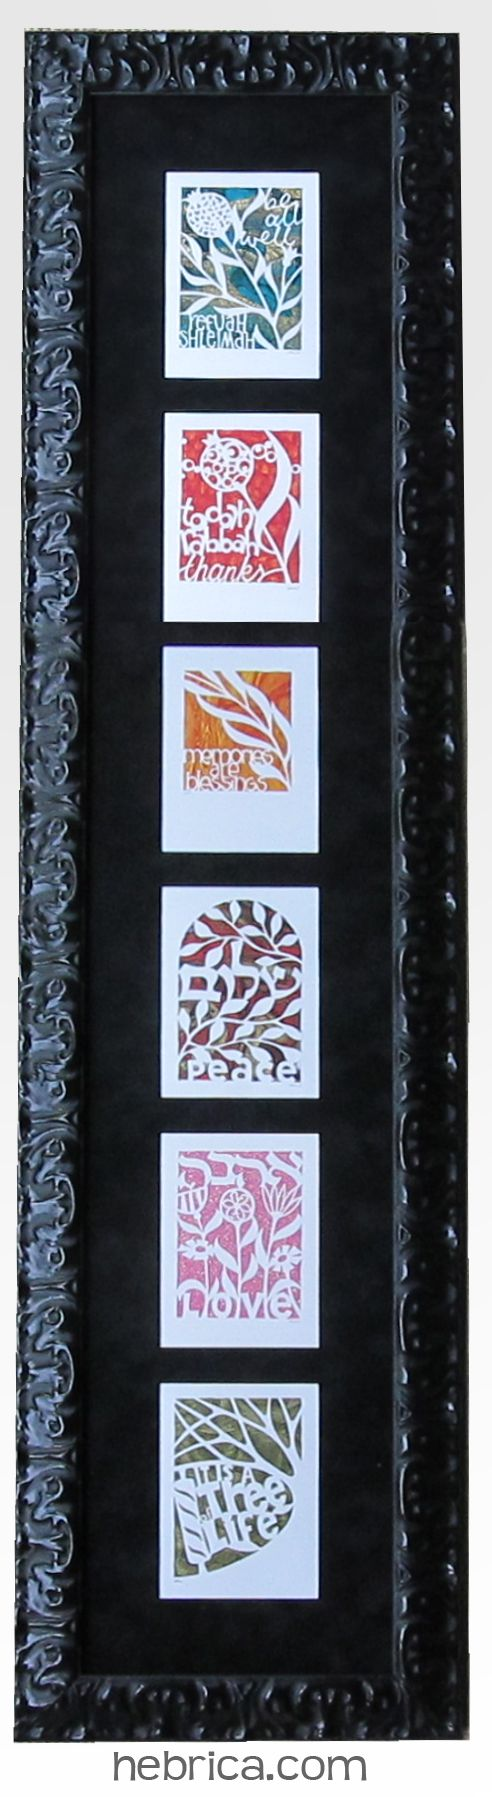 Jewish #Papercut Art ~ One of my clients framed these Jewish Greeting Cards I made #judaica #papercut http://www.hebrica.com/collections/jewish-greeting-cards